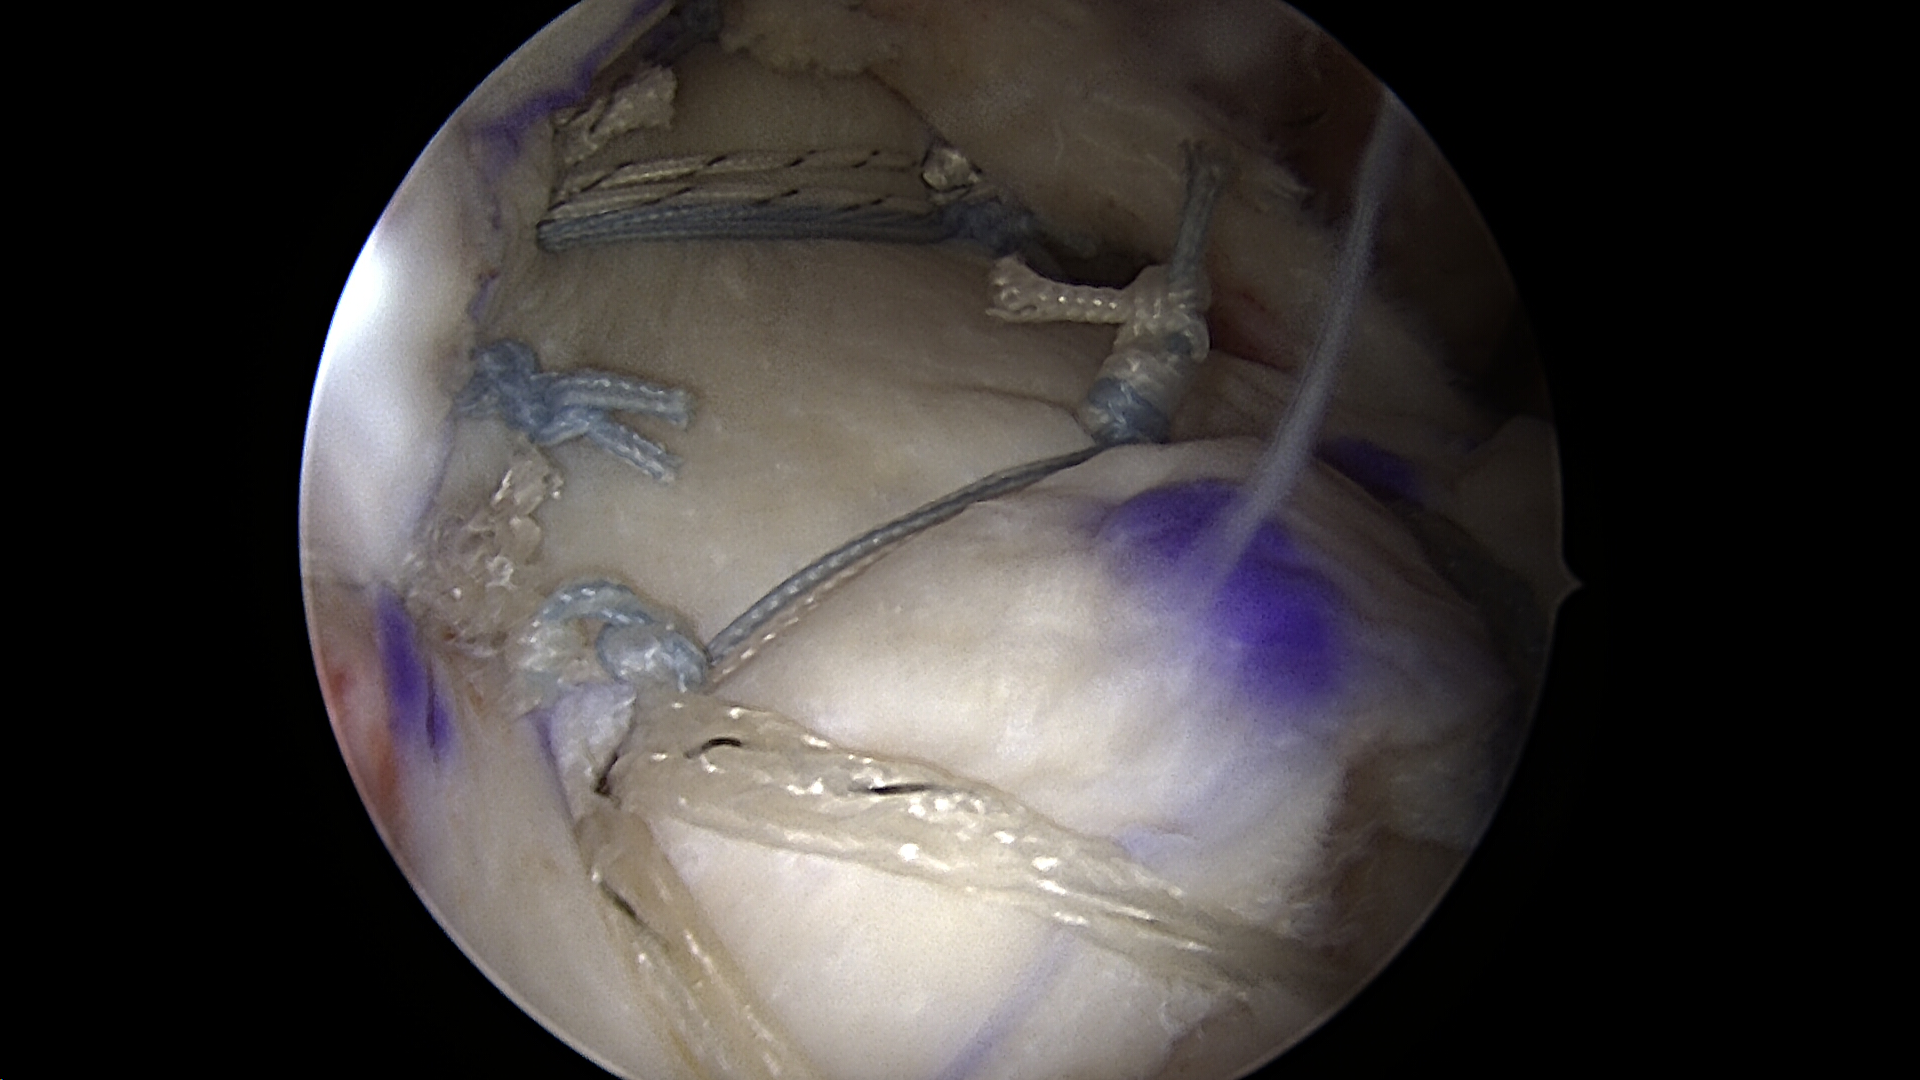 Superior capsule reconstruction of the previous massive retracted irreparable rotator cuff tear viewed from the lateral portal